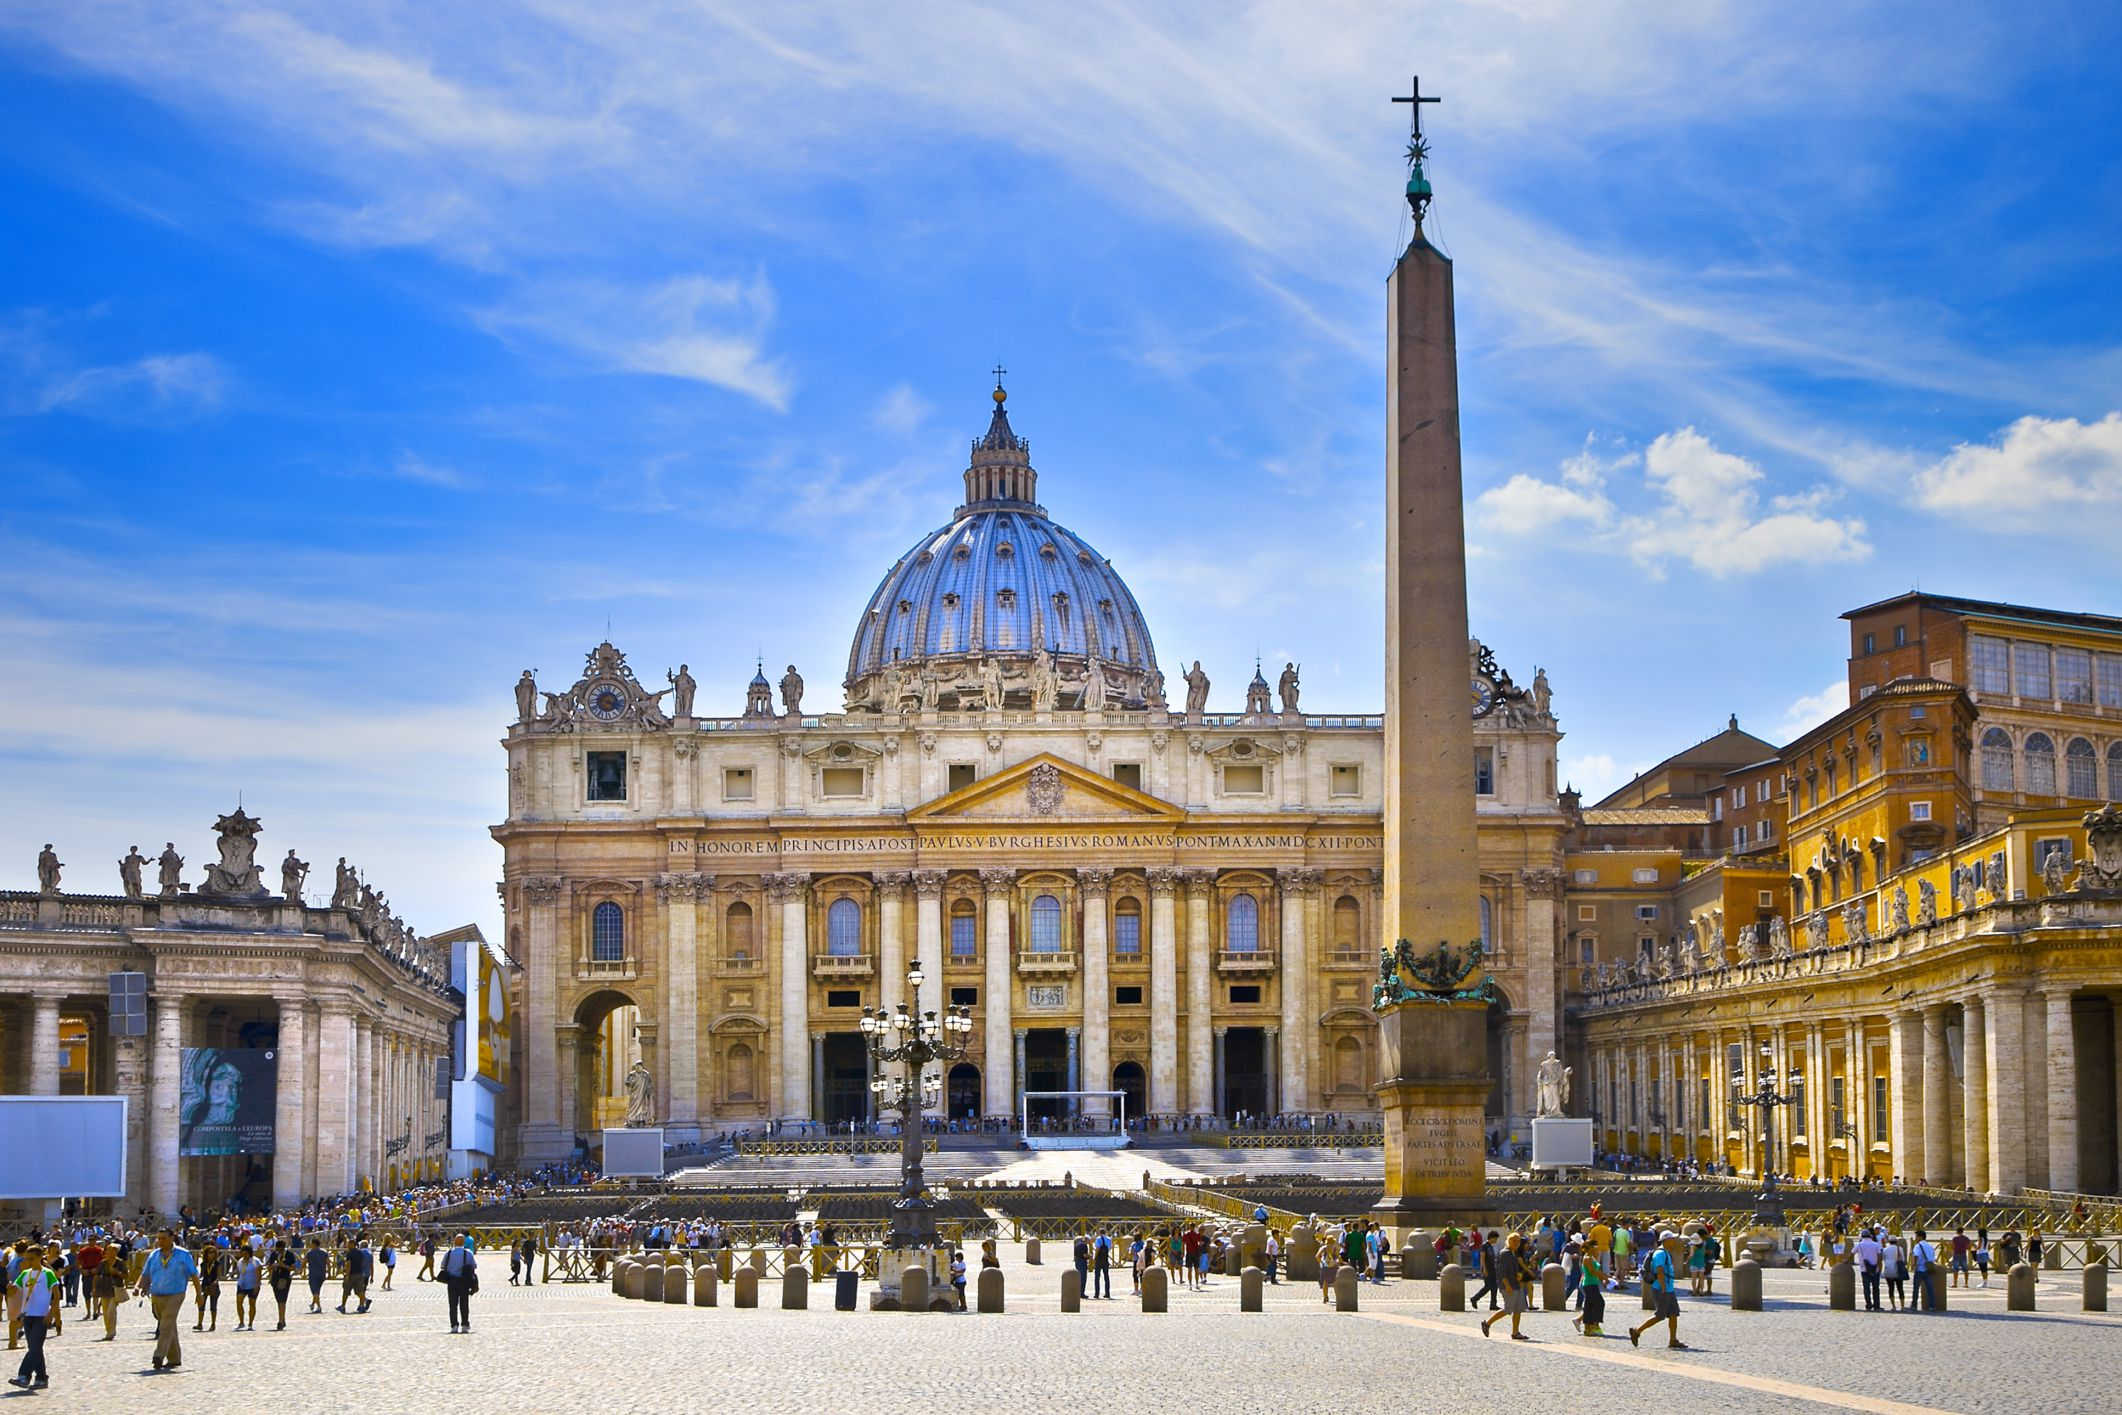 What Ordinary Time Means In The Catholic Church